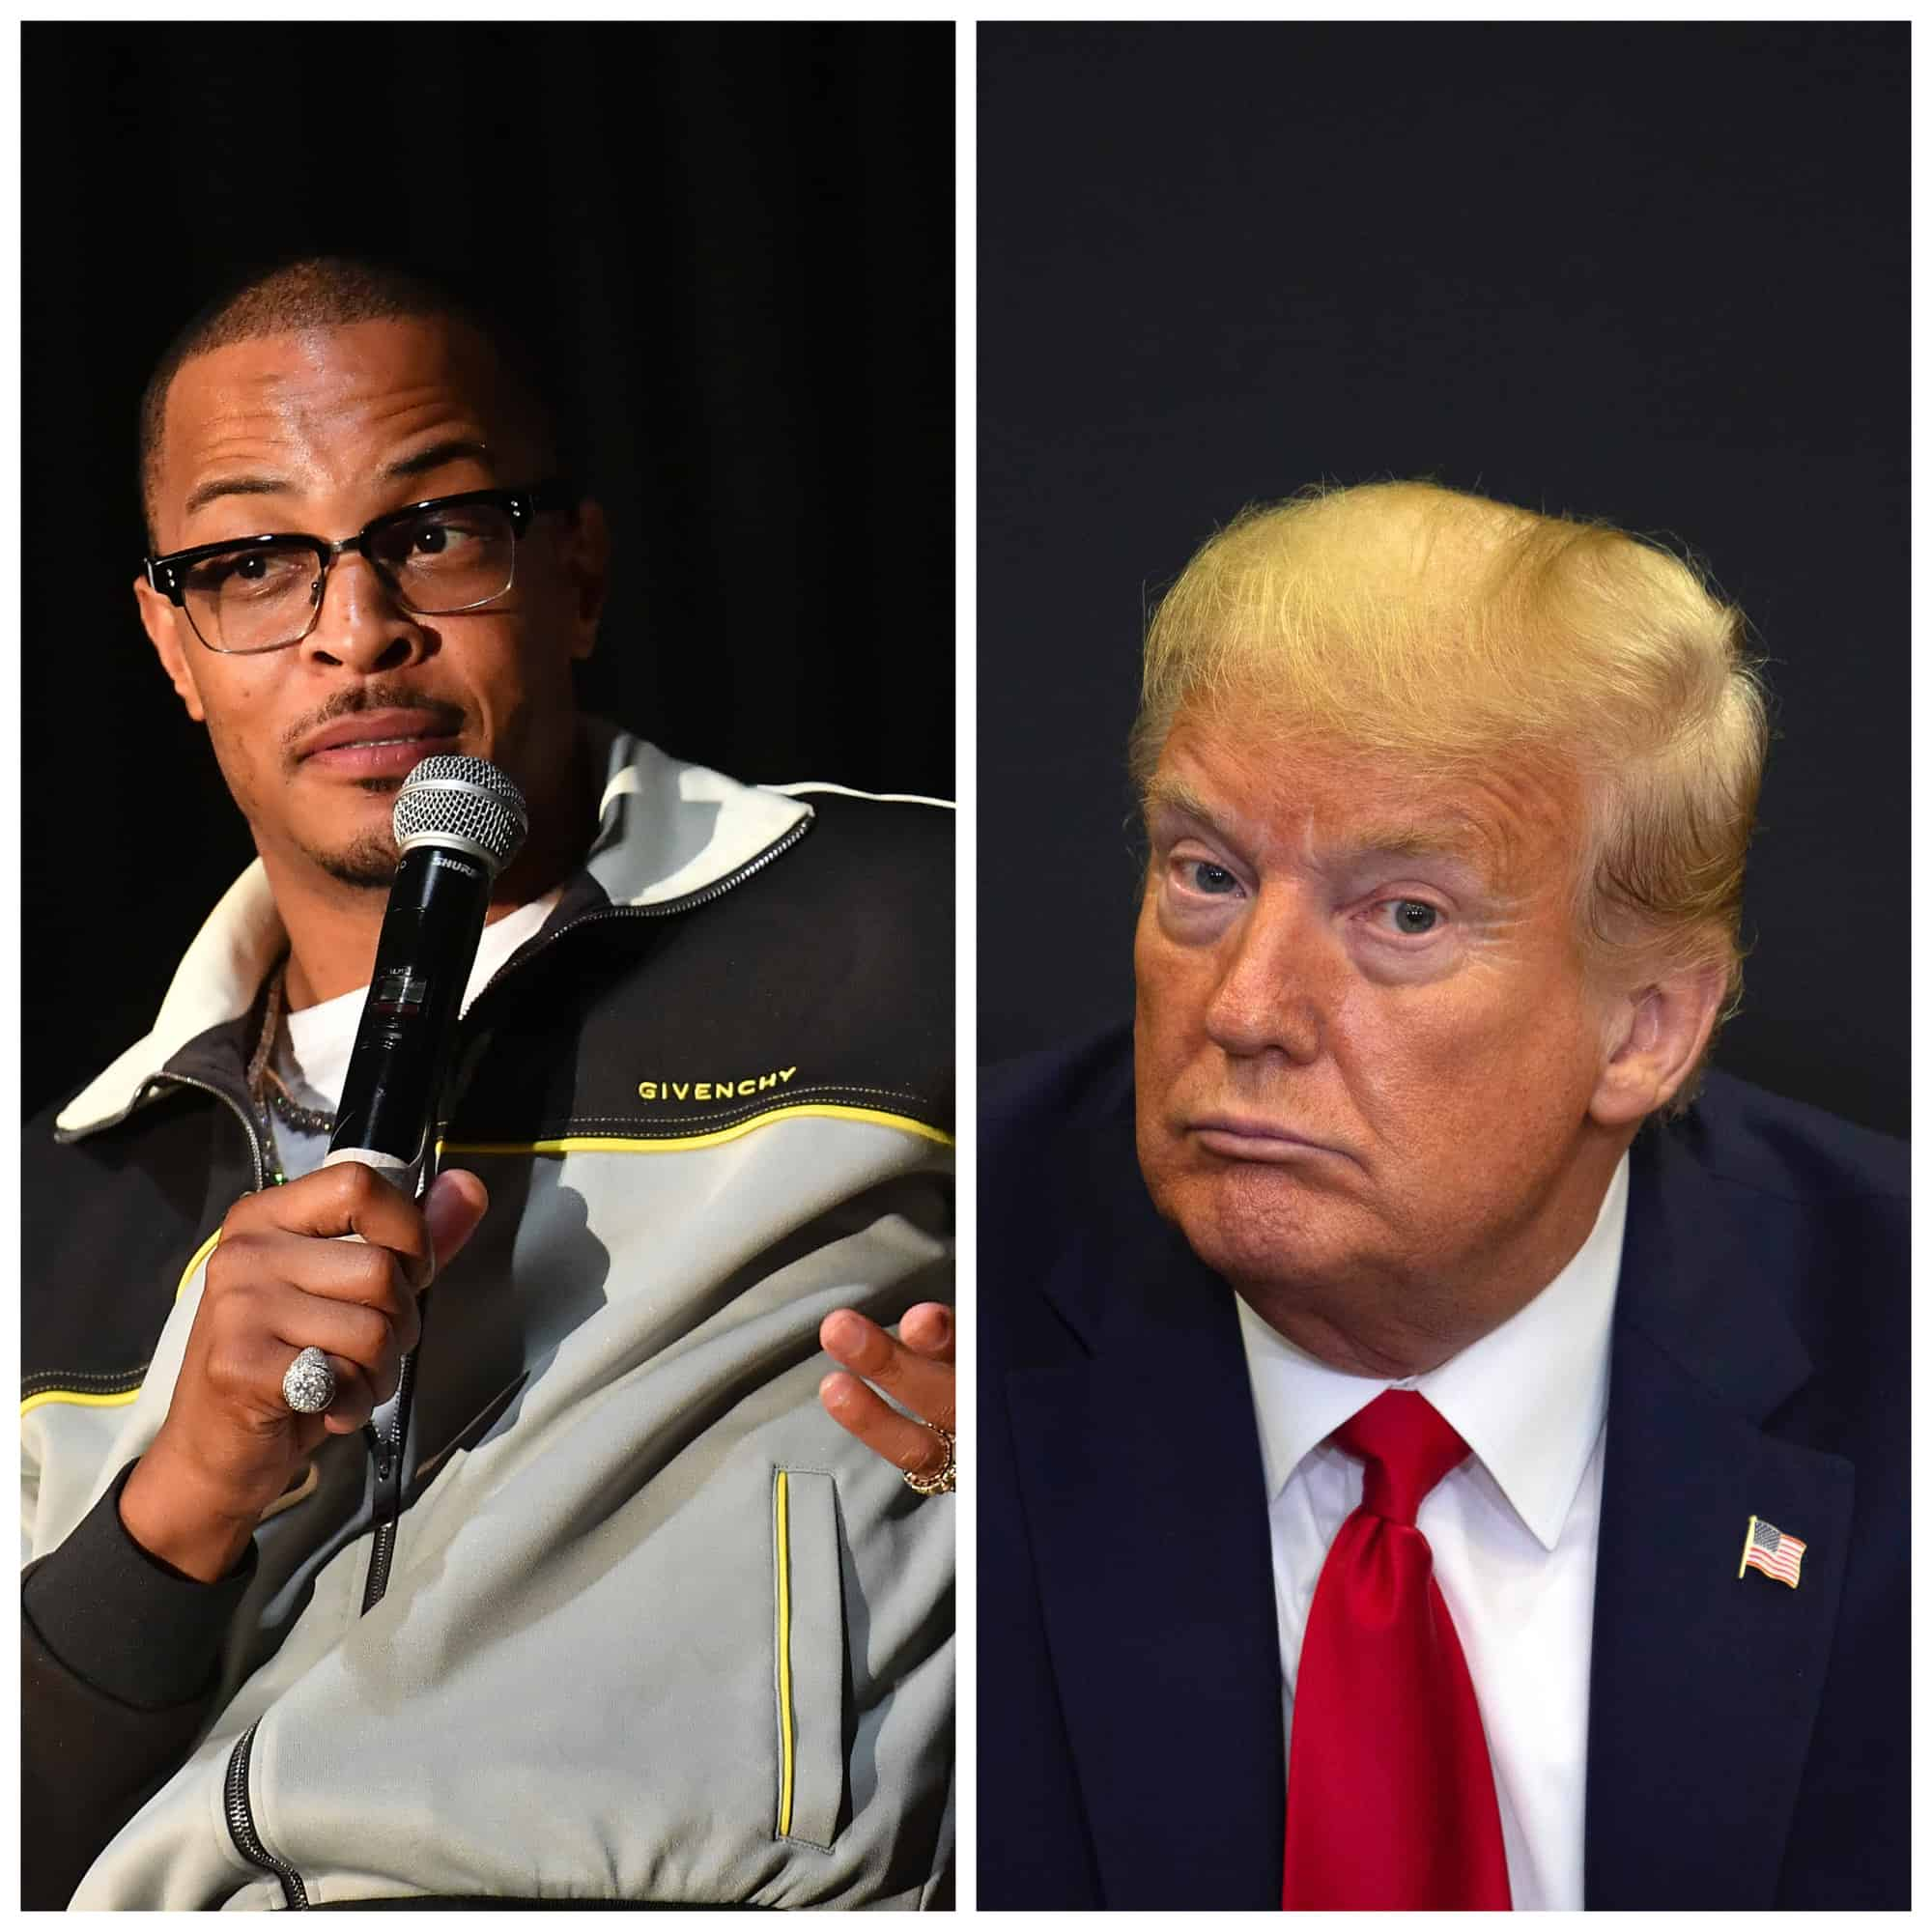 """T.I. responds to Donald Trump's alleged use of his hit song """"Whatever You Like"""" in anti-Joe Biden campaign ad on Snapchat."""